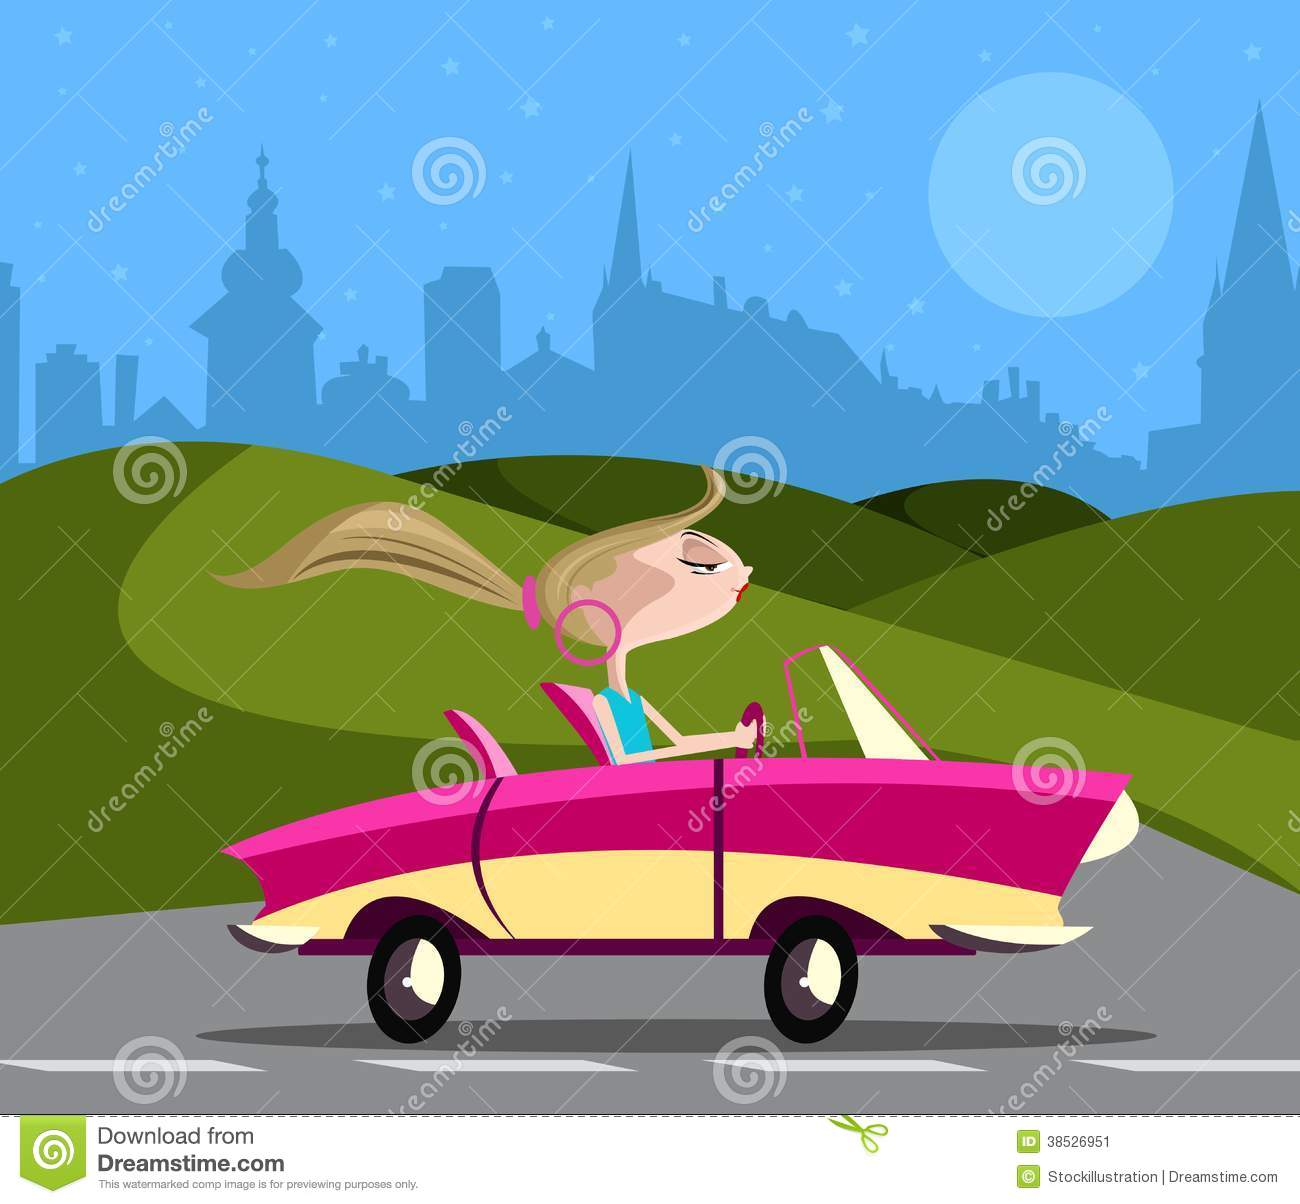 clipart car driving on road - photo #30